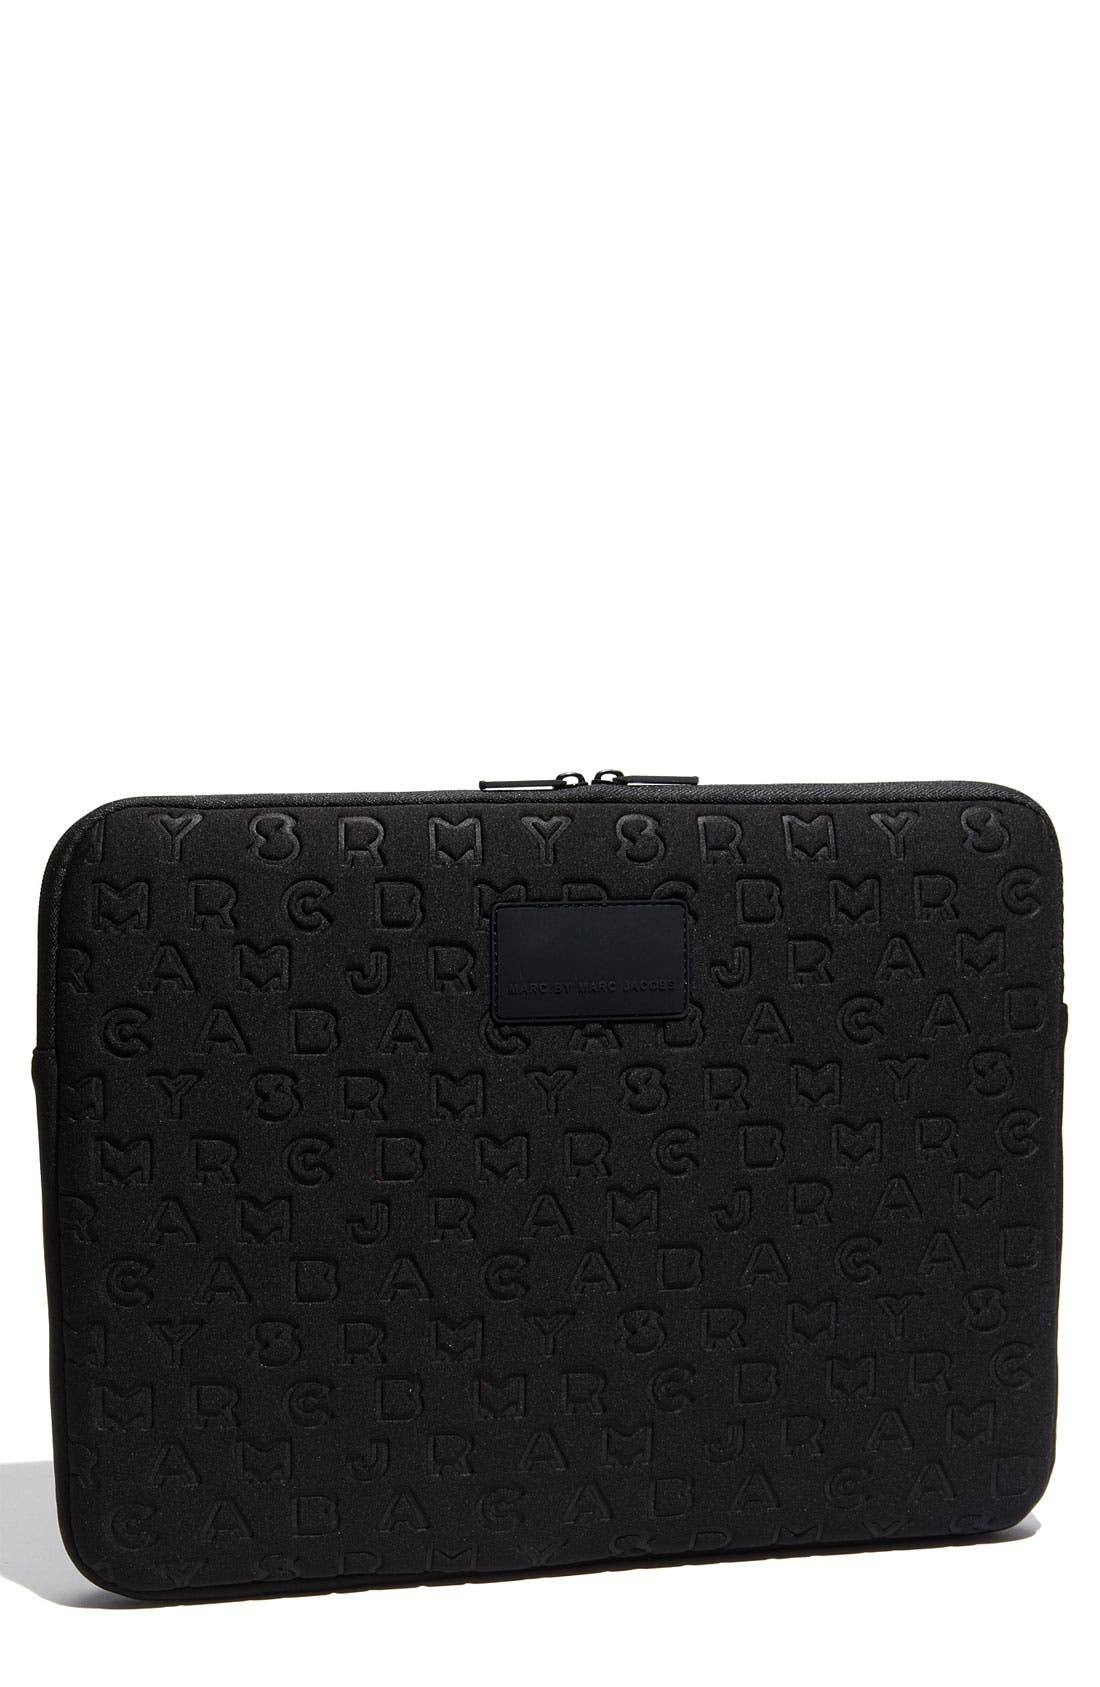 Alternate Image 1 Selected - MARC BY MARC JACOBS 'Jumble Logo' Laptop Sleeve (15 Inch)